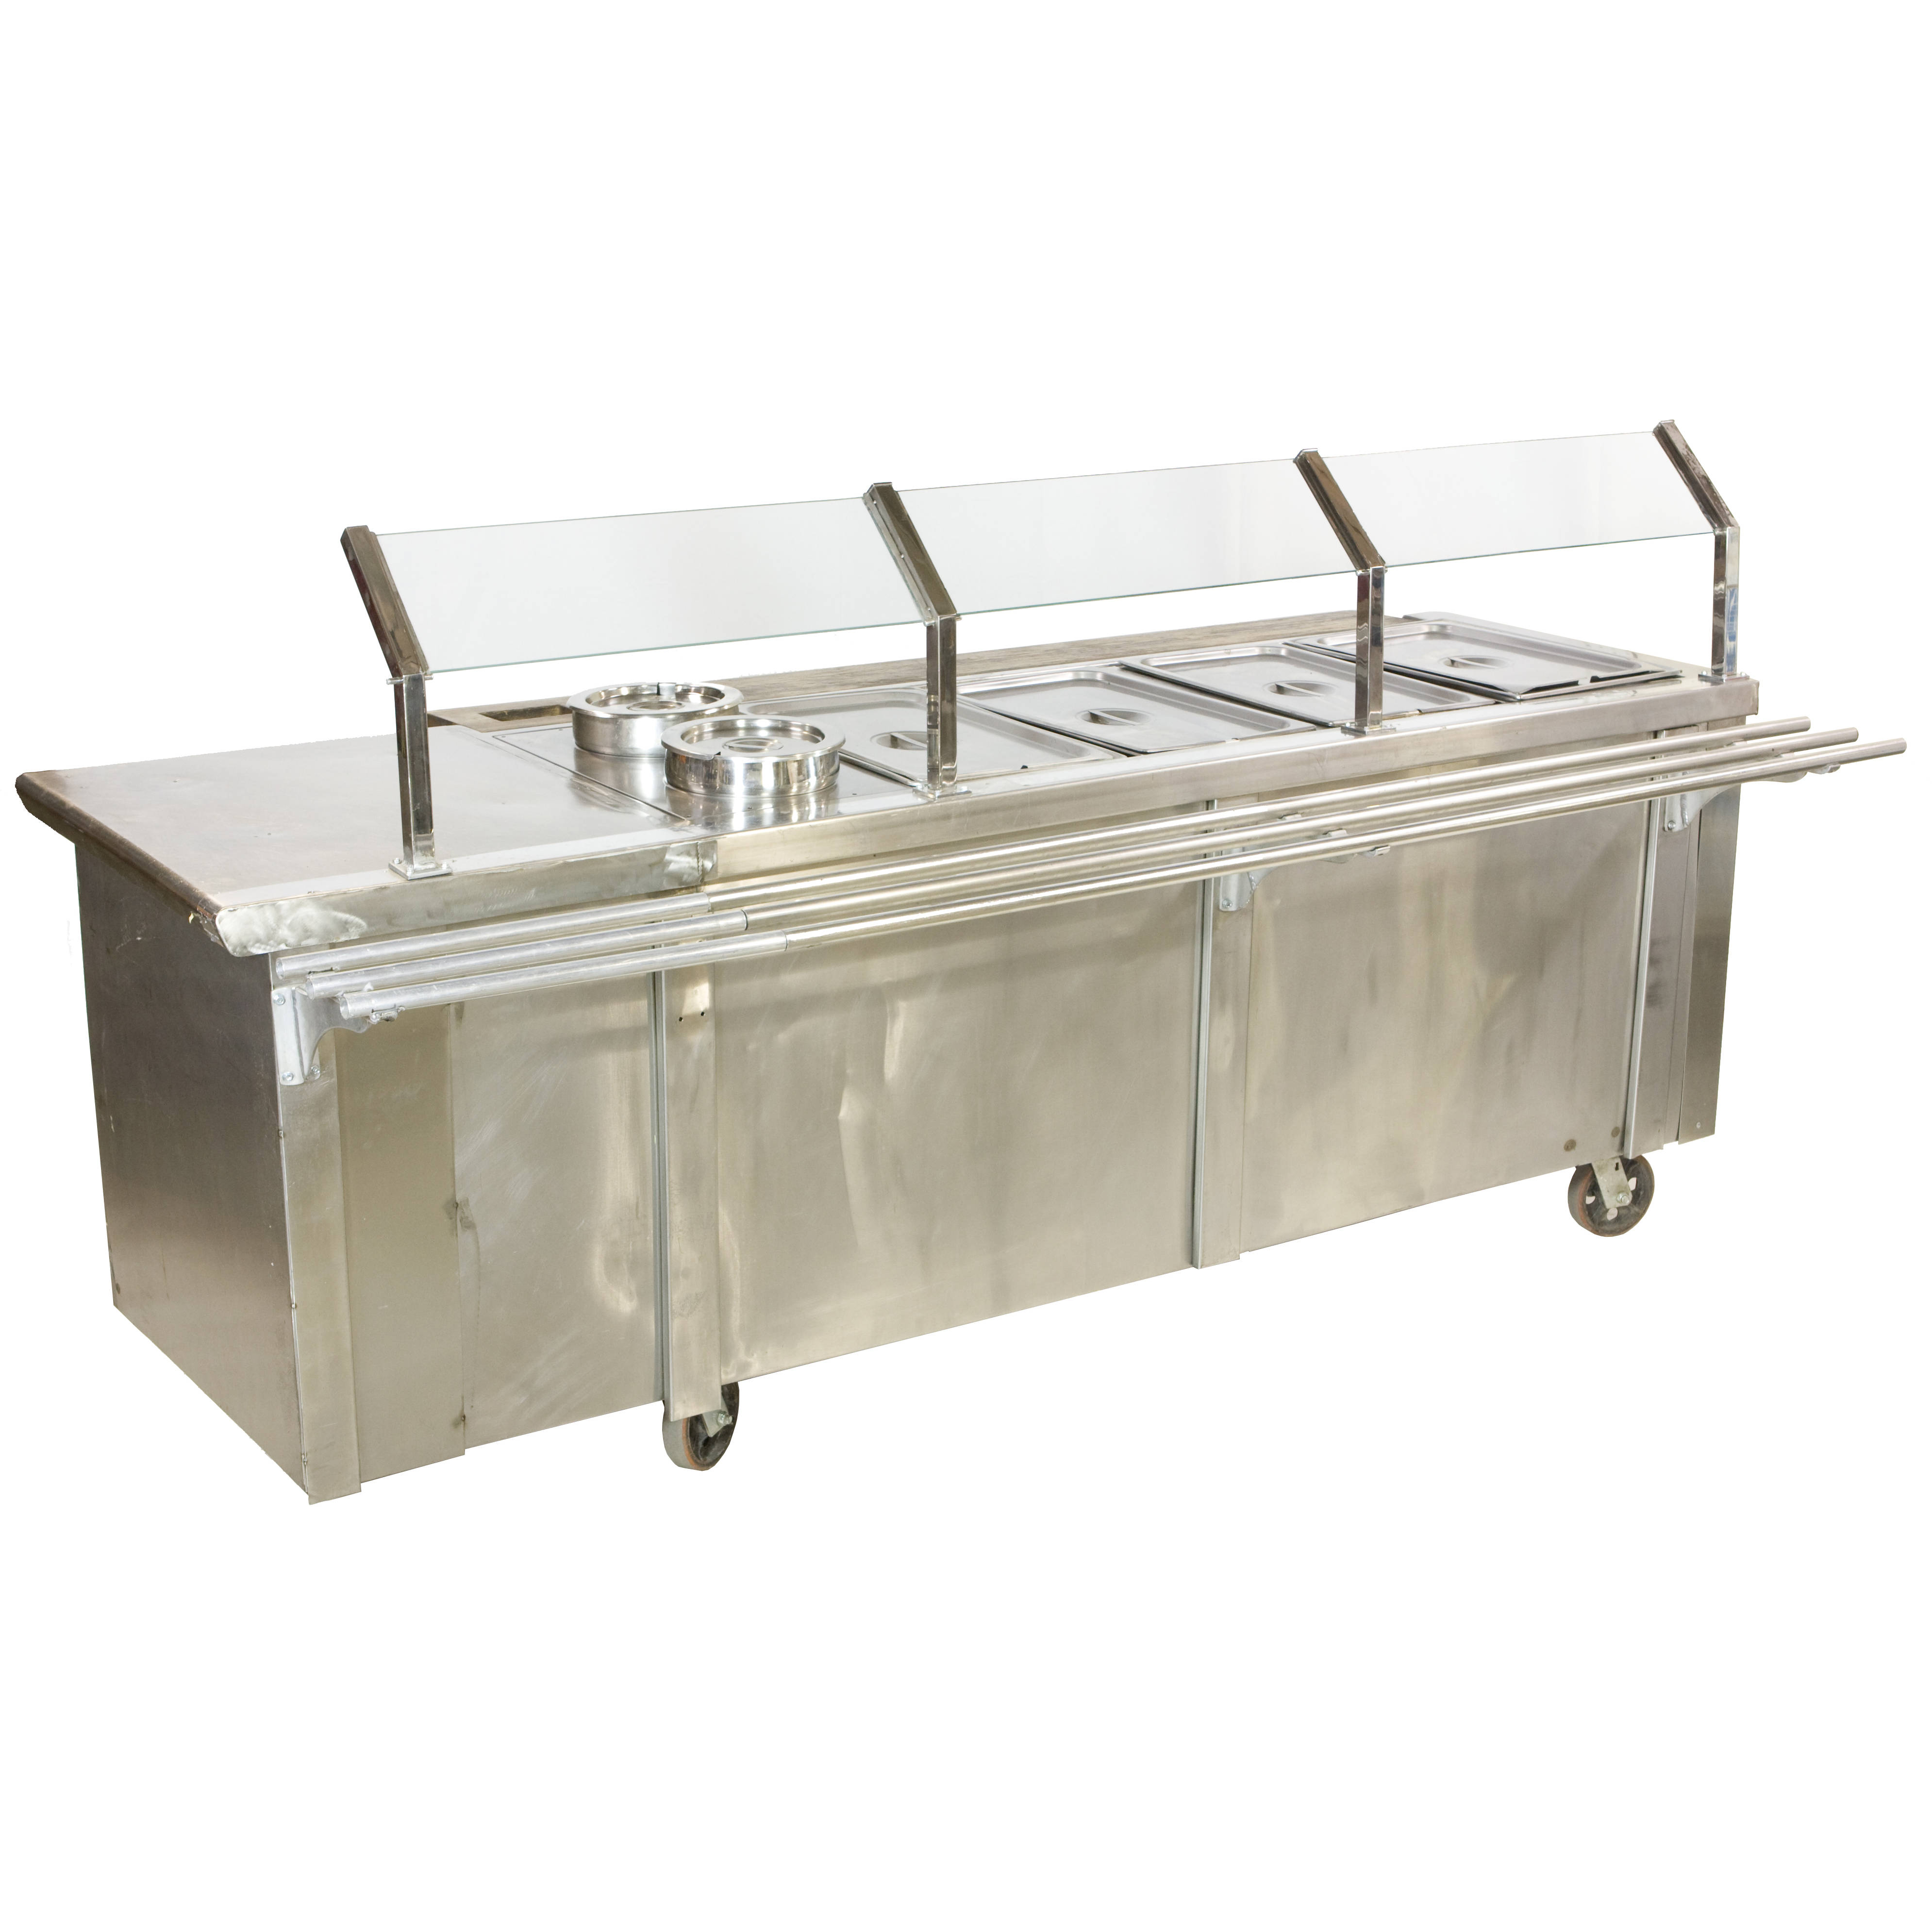 CAFETERIA SECTION STEAM TABLE W TRAY RAIL Air Designs - Cafeteria steam table